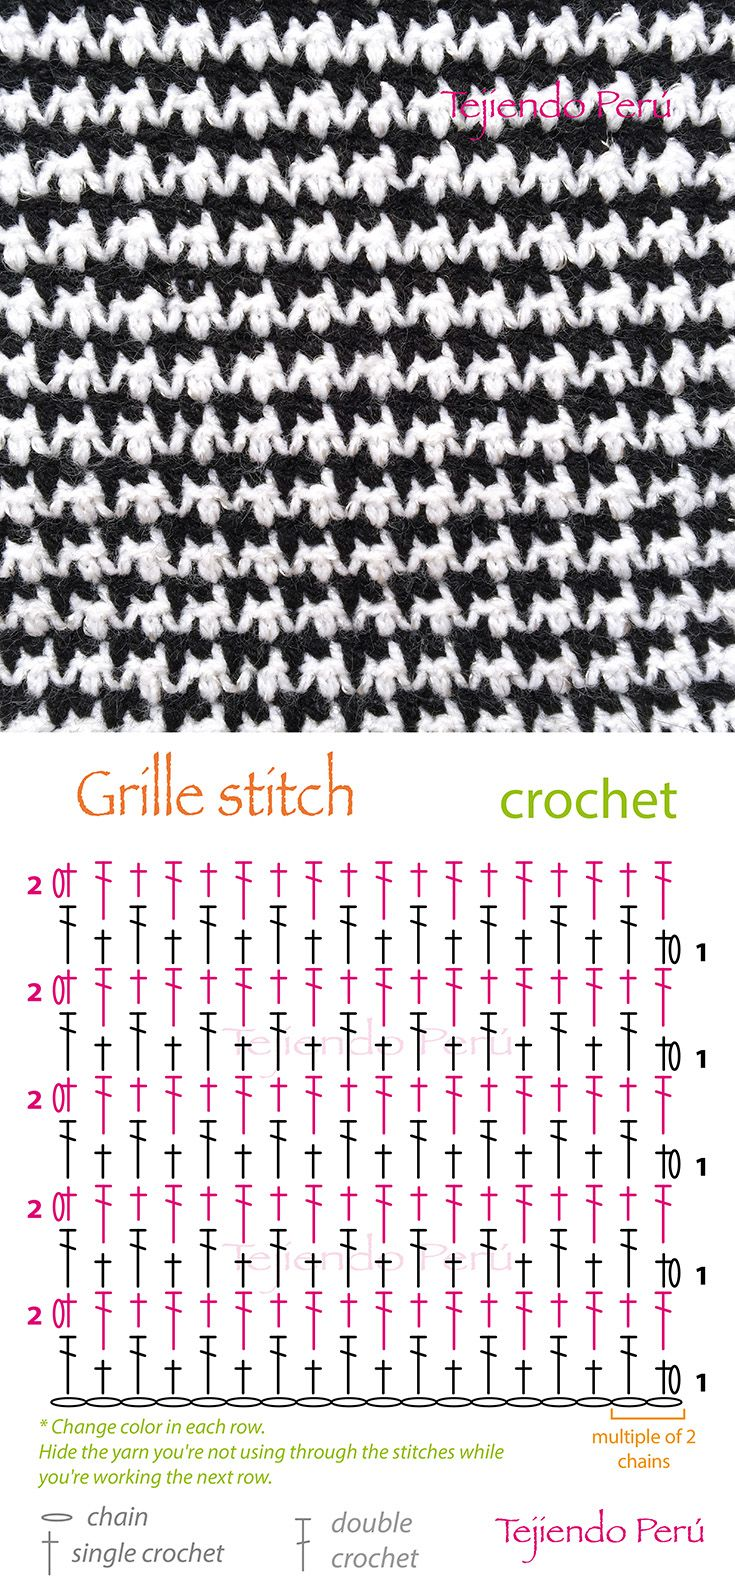 Crochet: grille stitch diagram (pattern or chart)! | Crochet ...